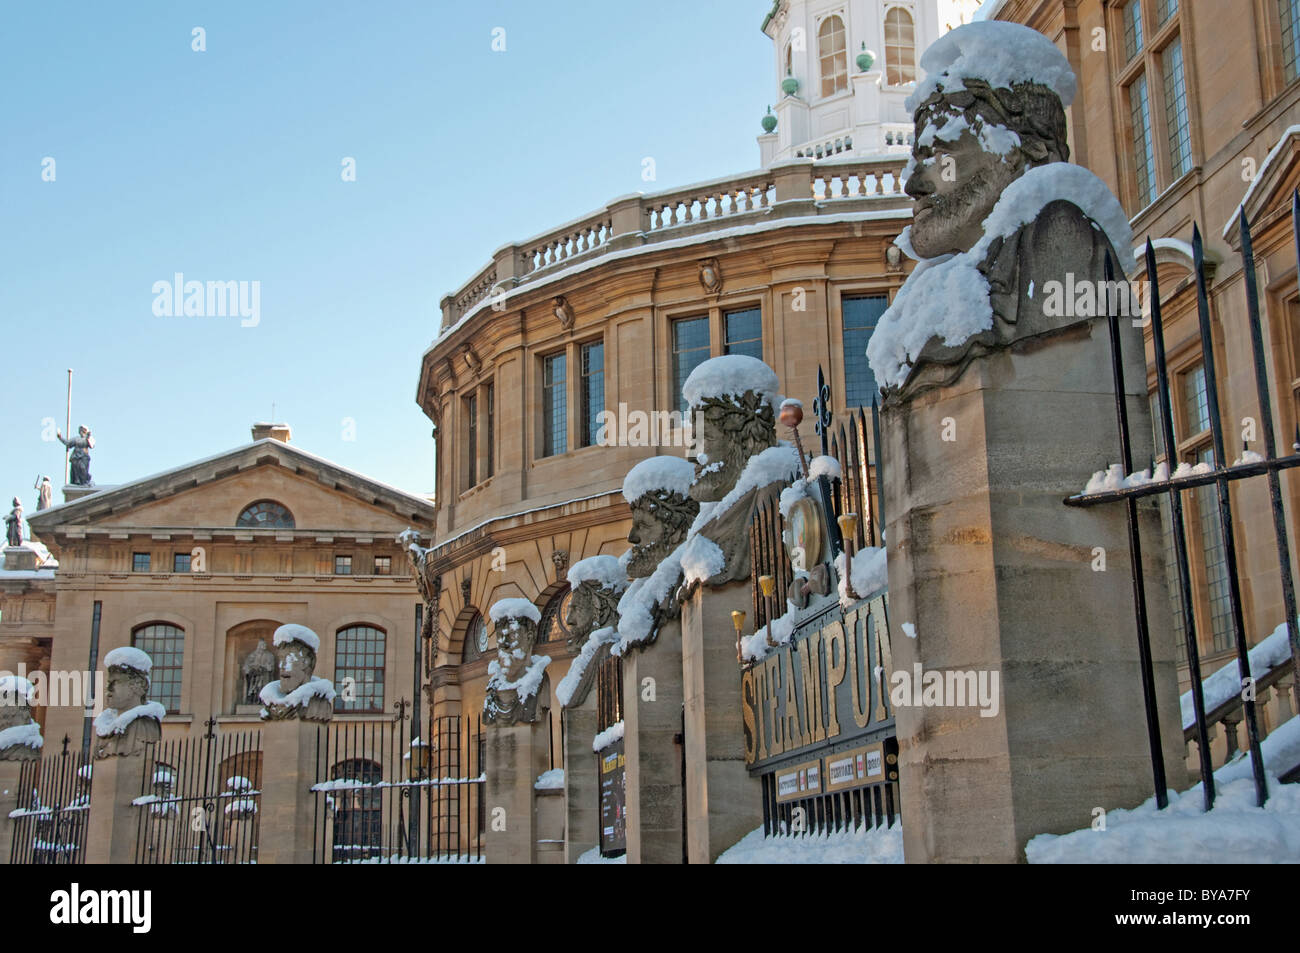 Snow Covered Statues, Museum of the History of Science, Sheldonian Theatre, Oxford, UK Stock Photo